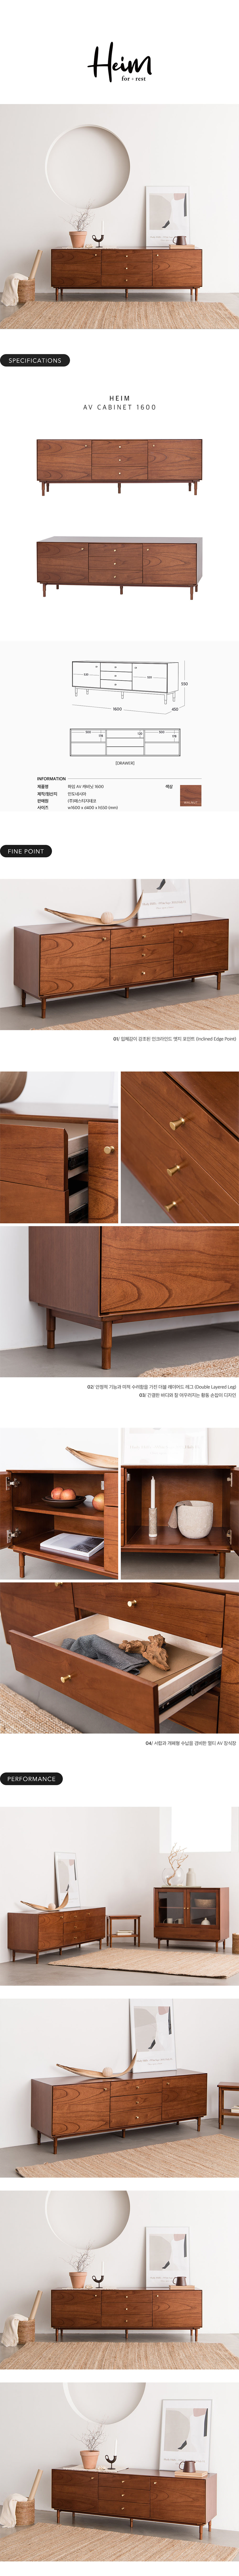 heim_walnut_brown_TV_console_1600_by_born_in_colour